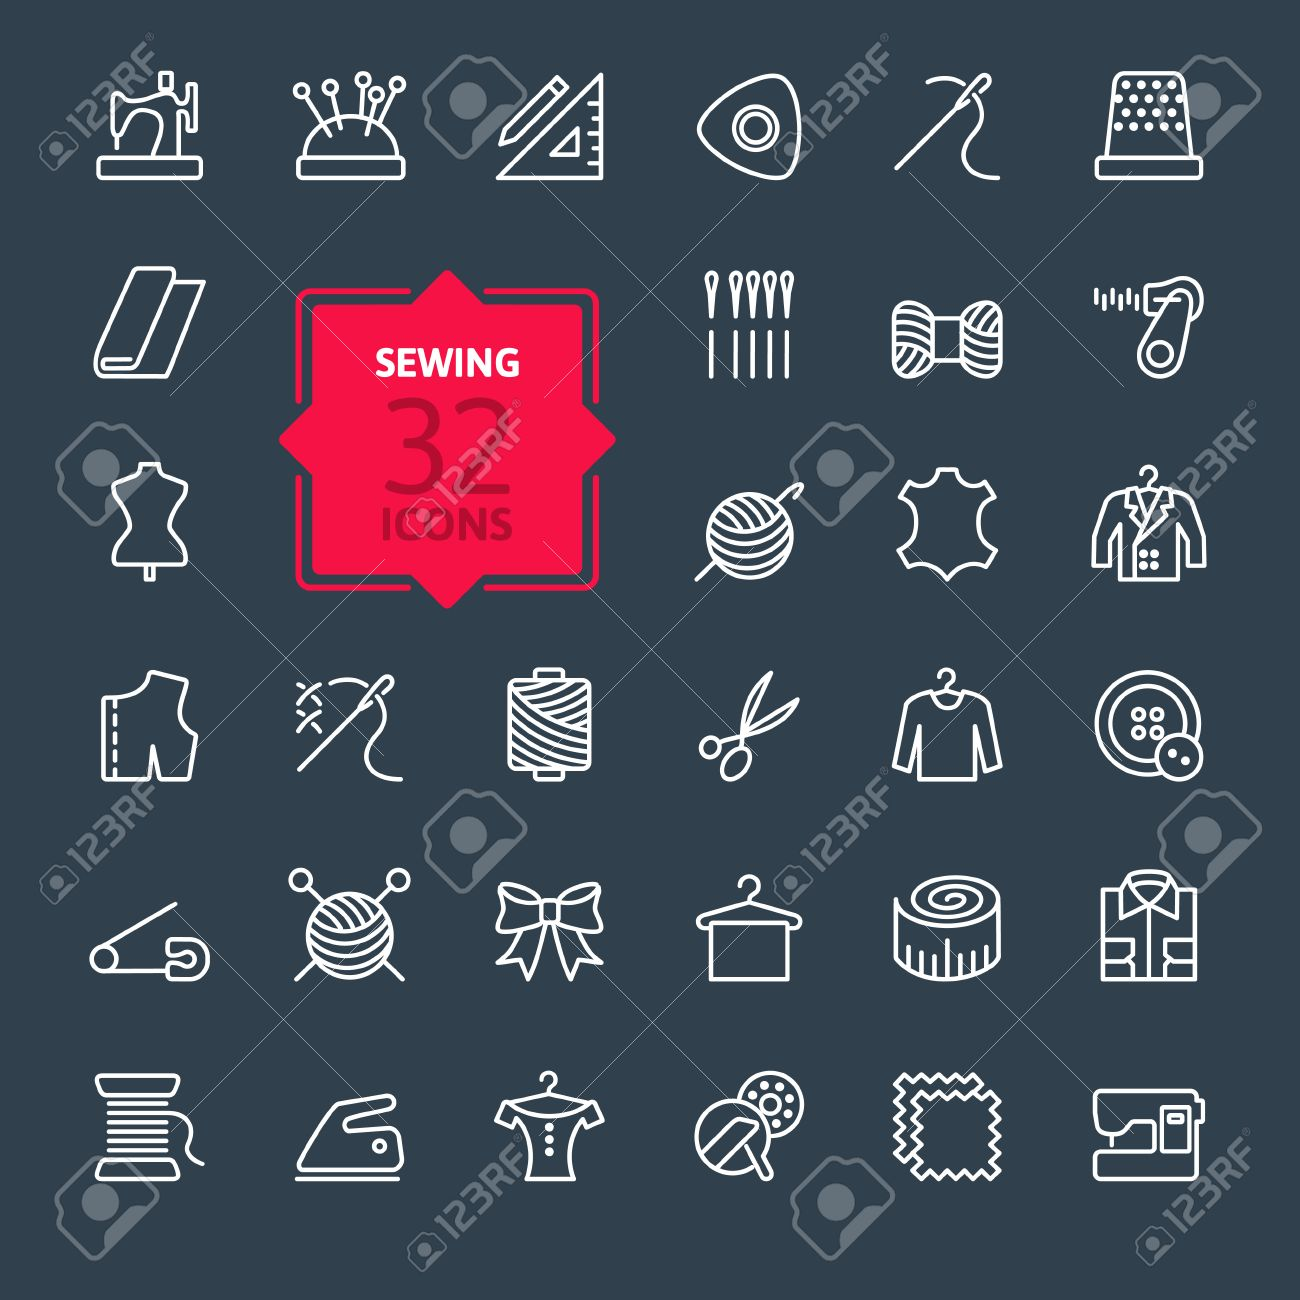 Thin lines web icon set sewing equipment and needlework - 41709289